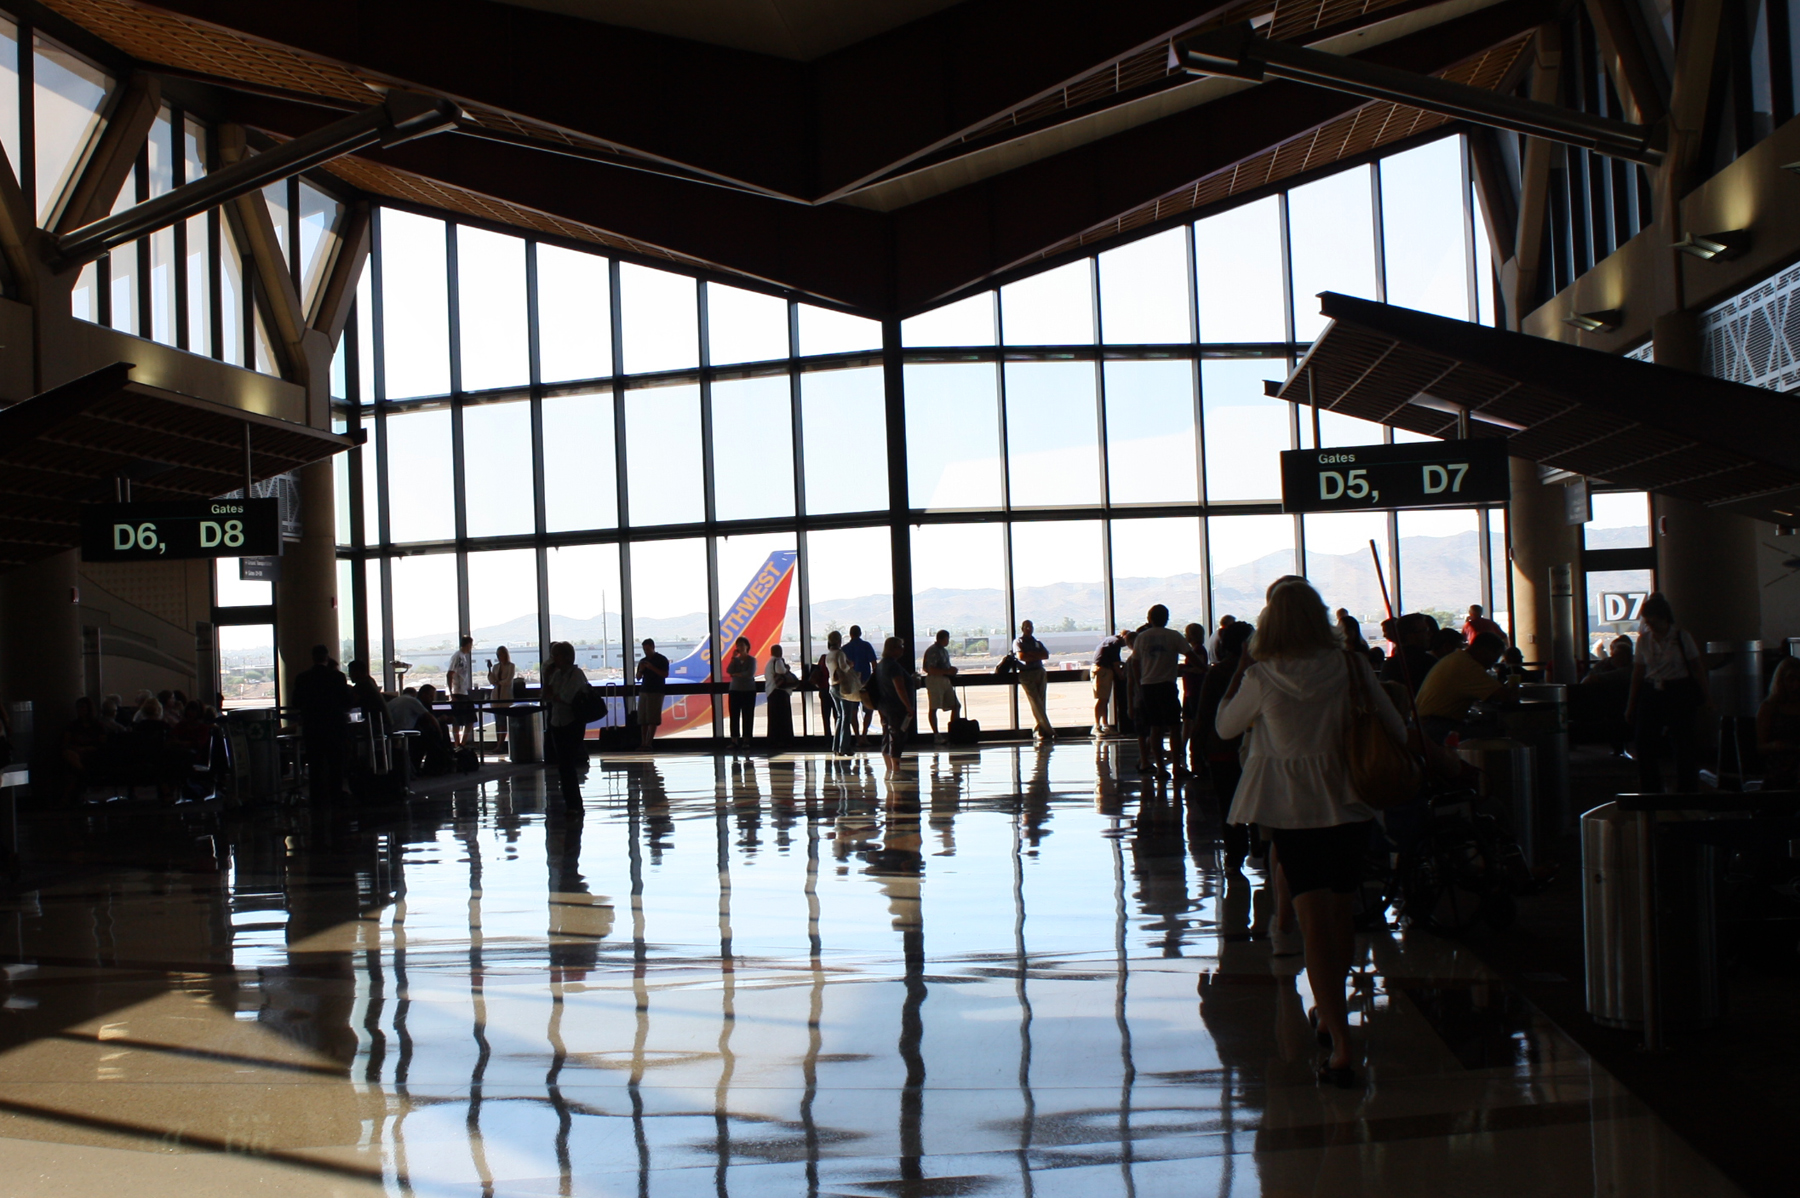 Fly anywhere in the world from Sky Harbor International Airport.